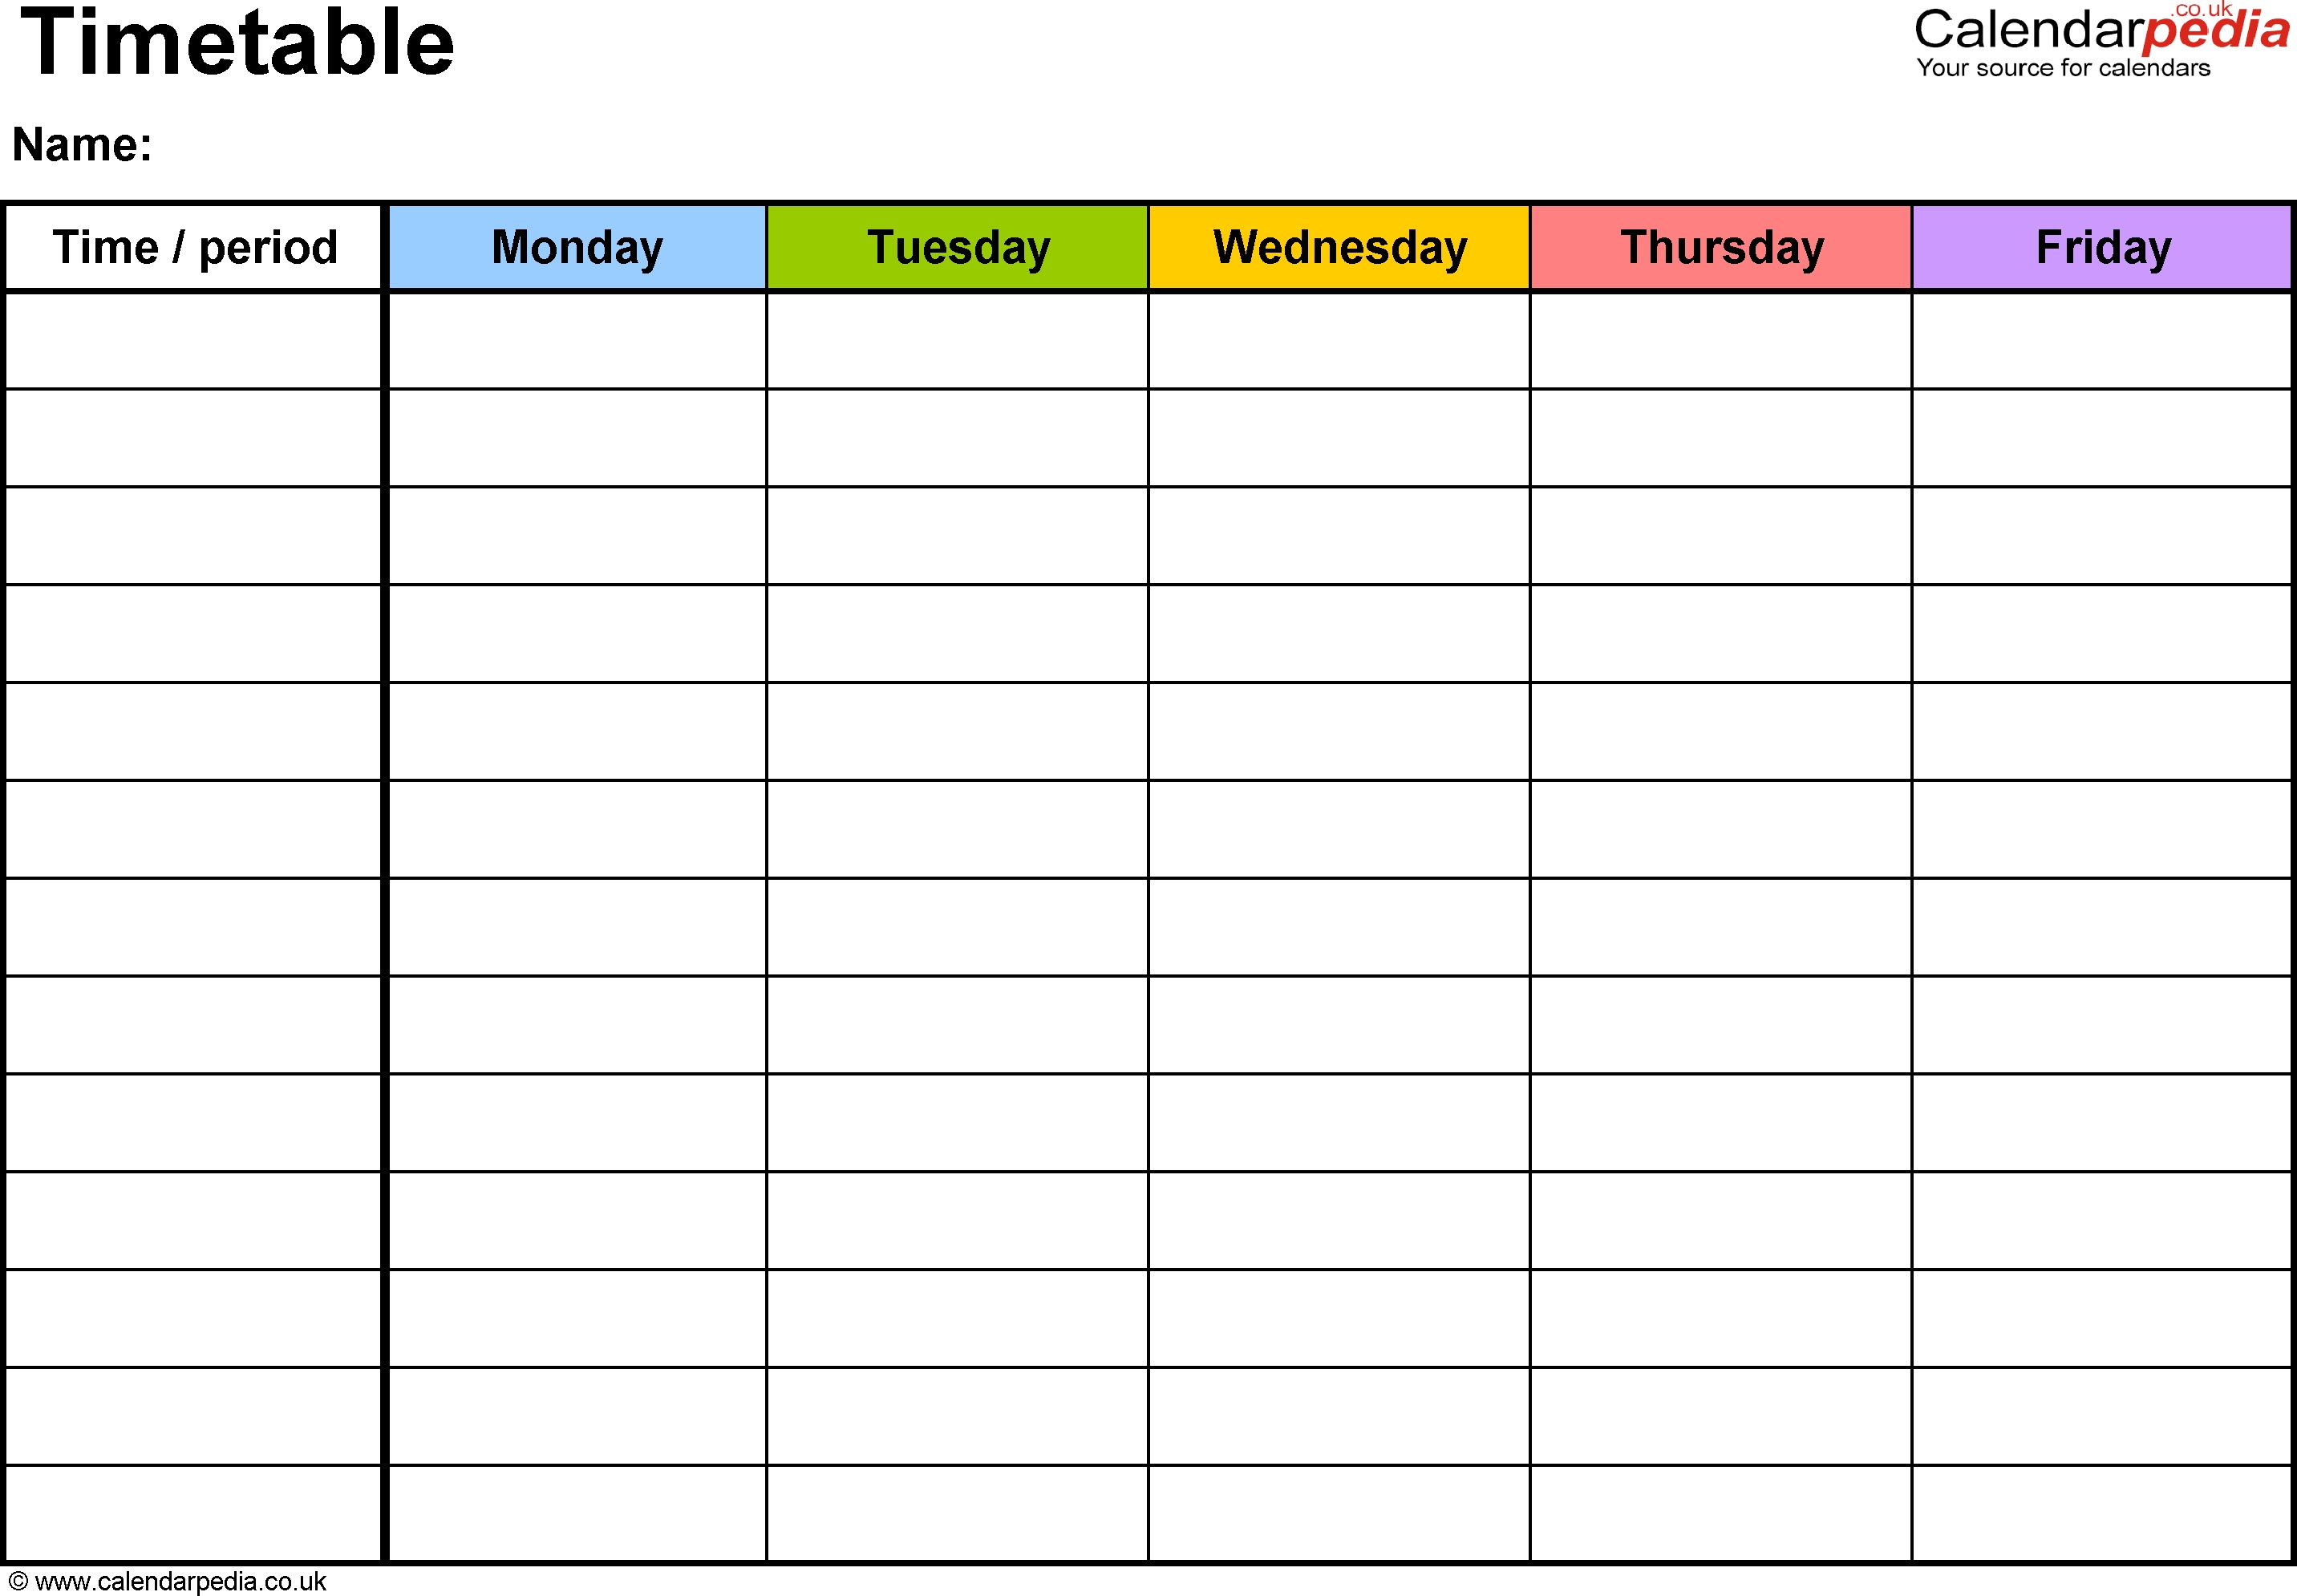 Printable Calendar Template Week Day Only | Example Calendar regarding Printable Calendar By Week